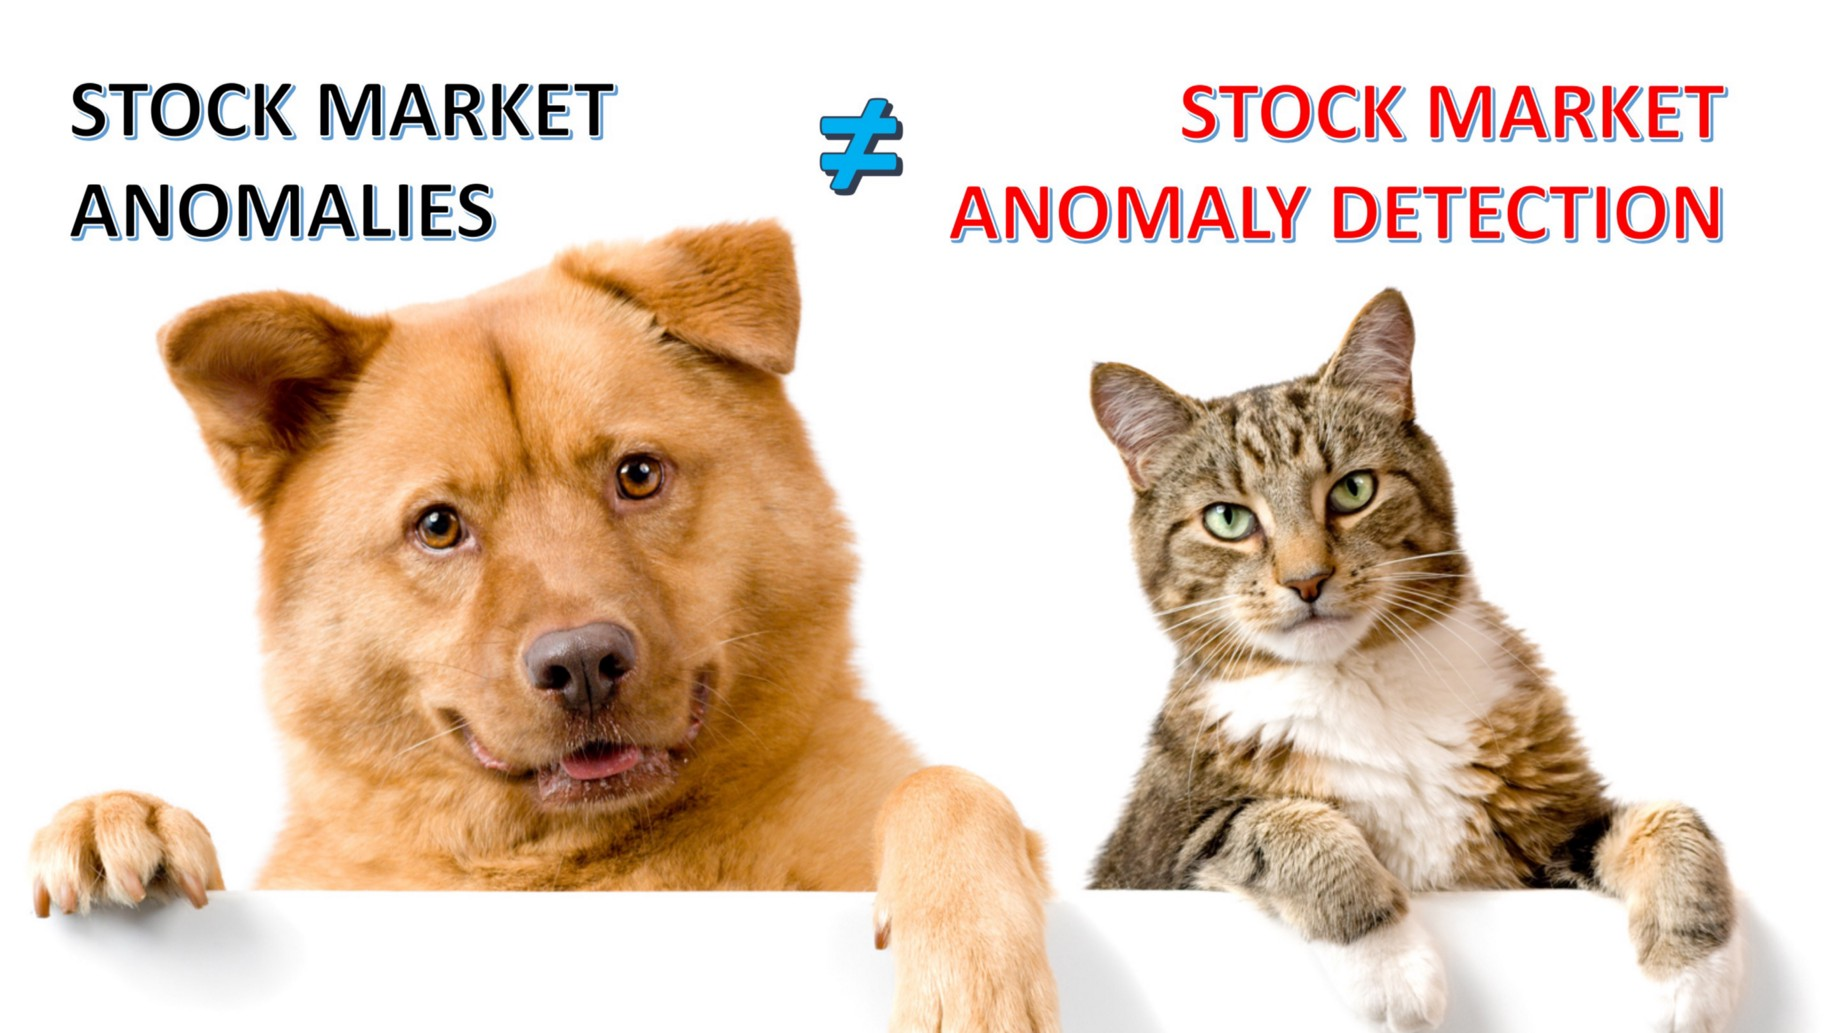 """Stock Market Anomalies"""" and """"Stock Market Anomaly Detection"""" Are Two"""